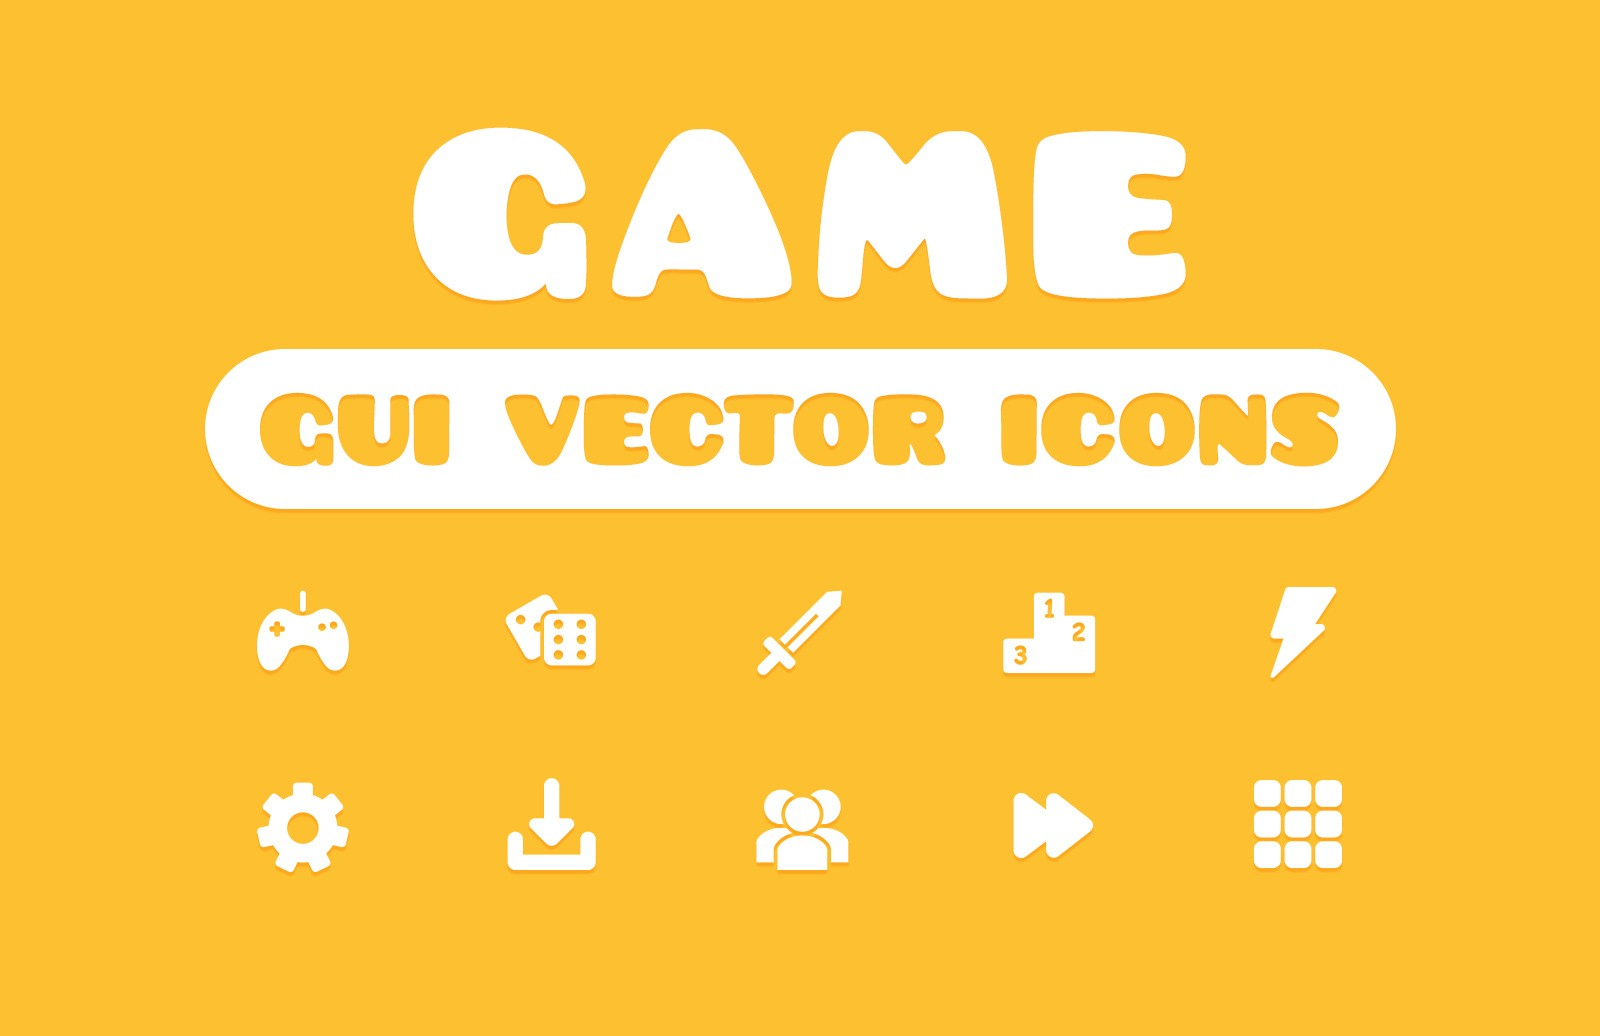 Game GUI Vector Icons 1